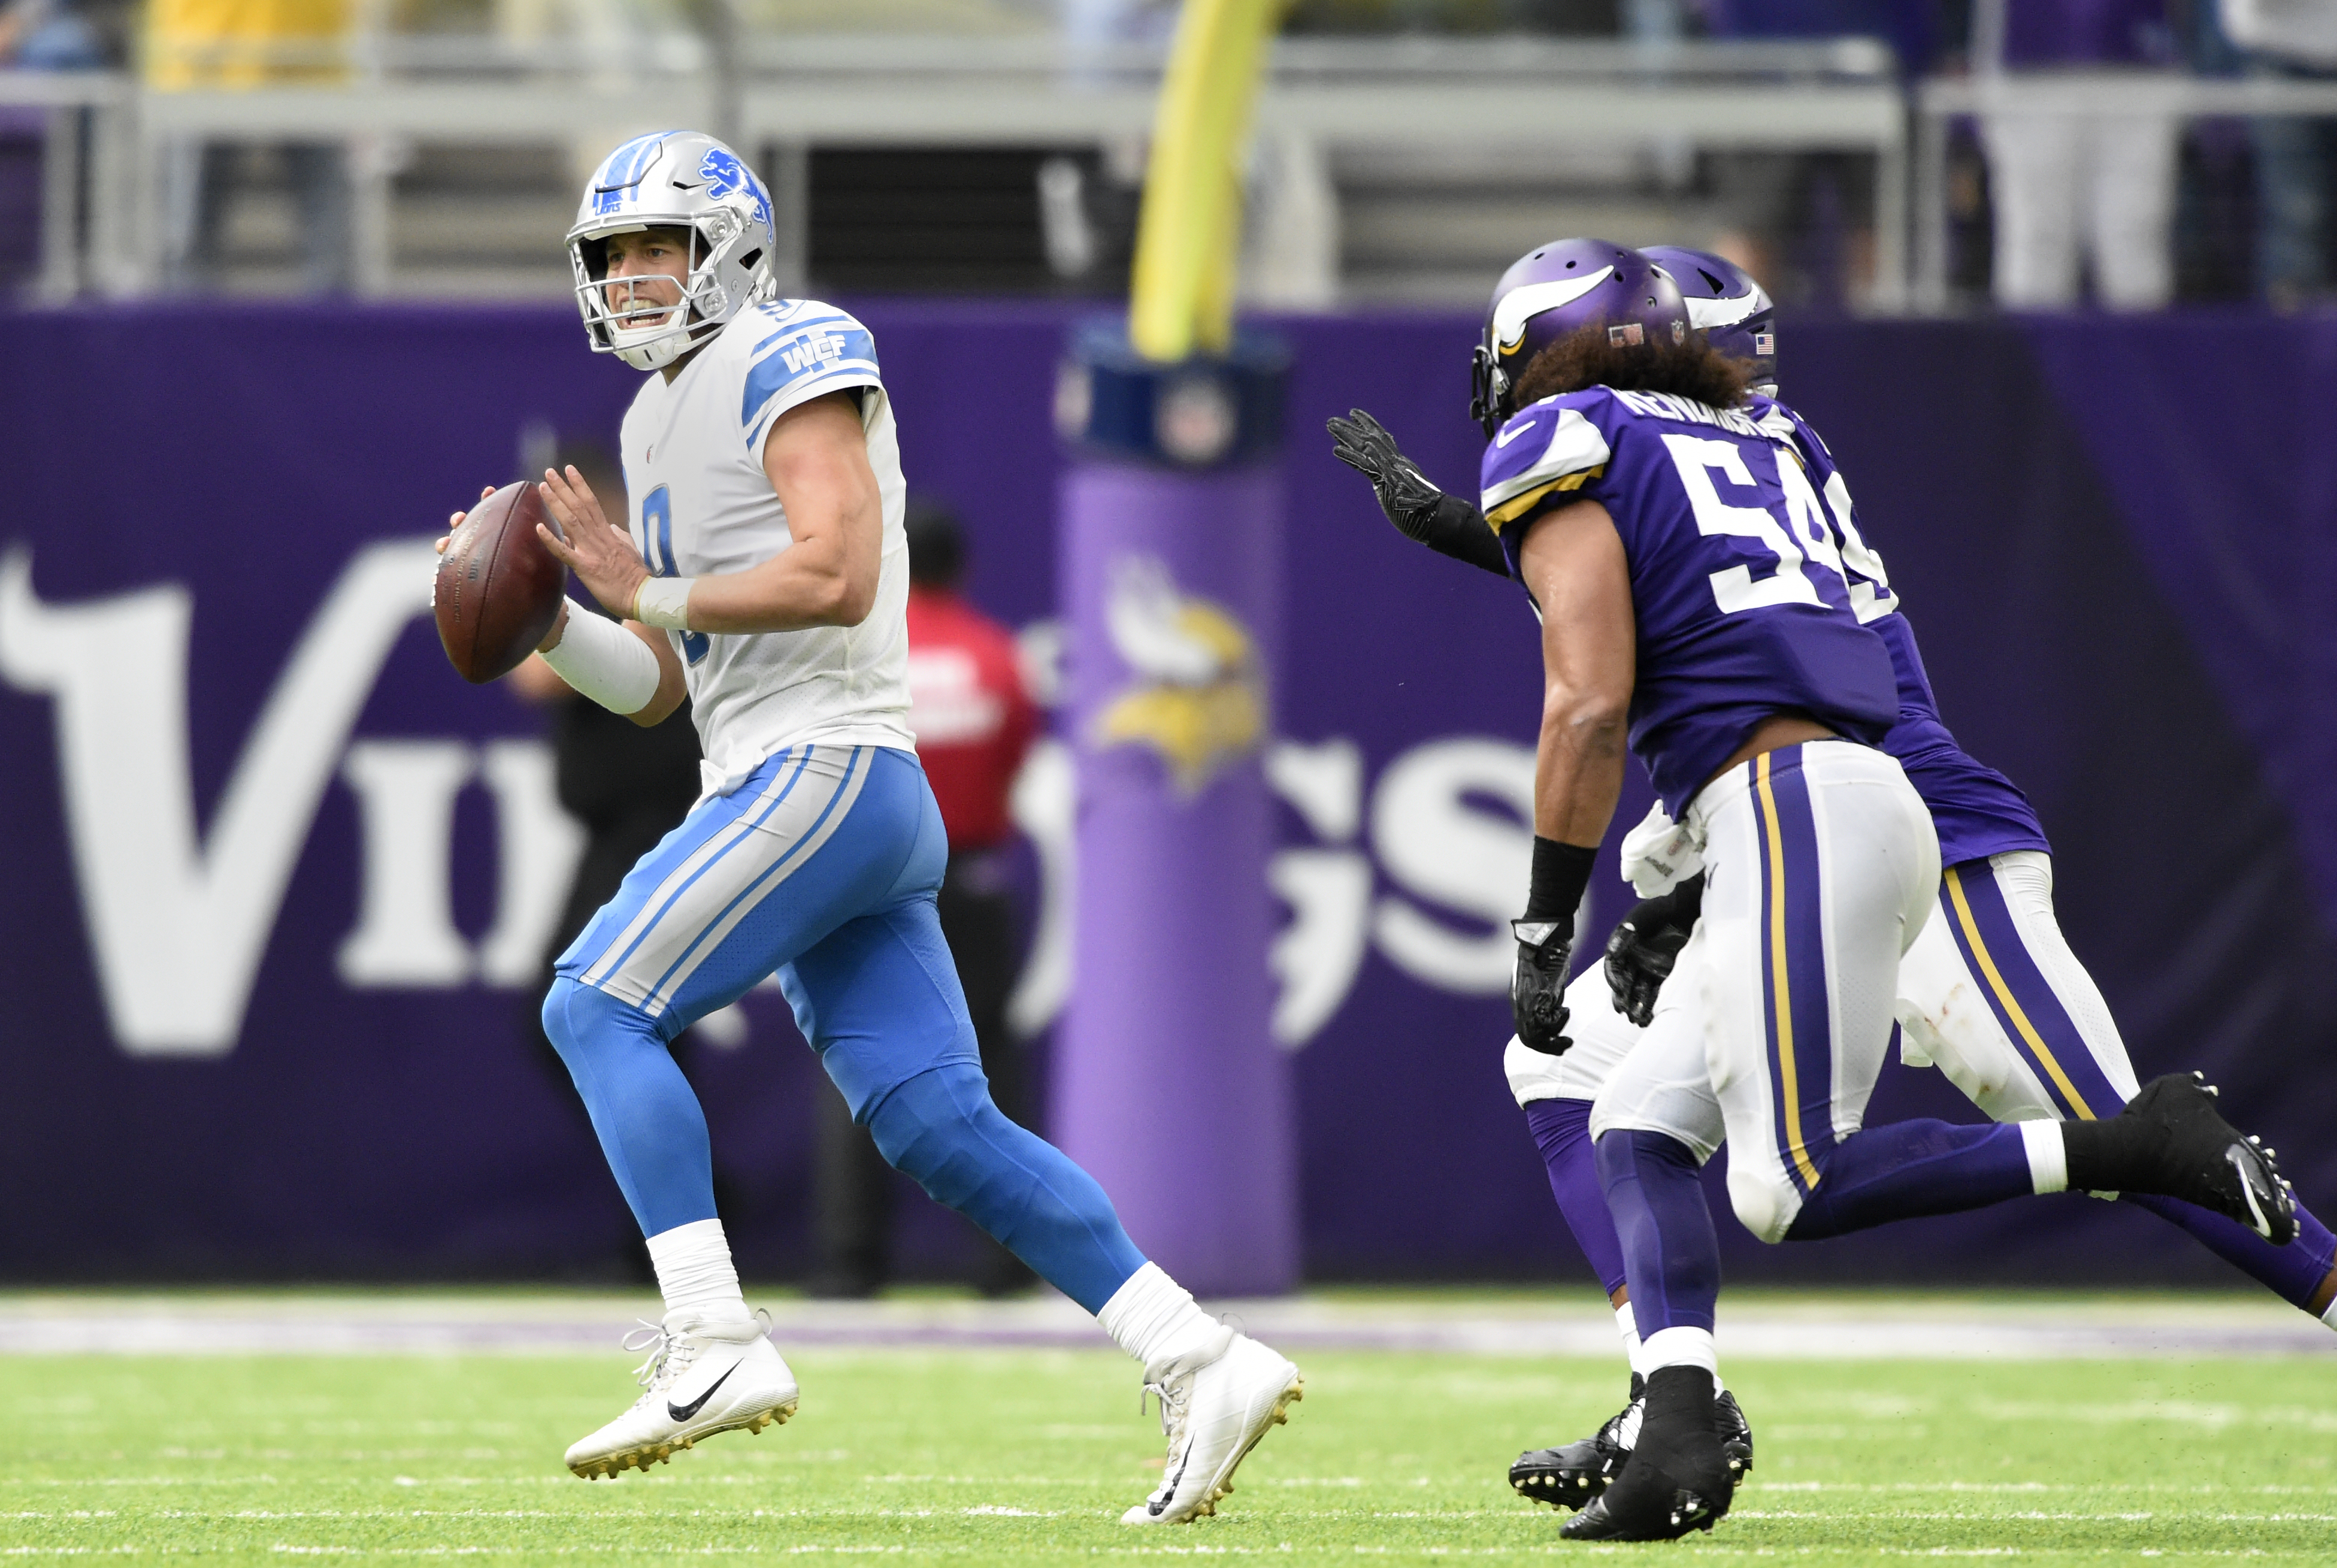 Minnesota Vikings vs. Detroit Lions: Preview and prediction